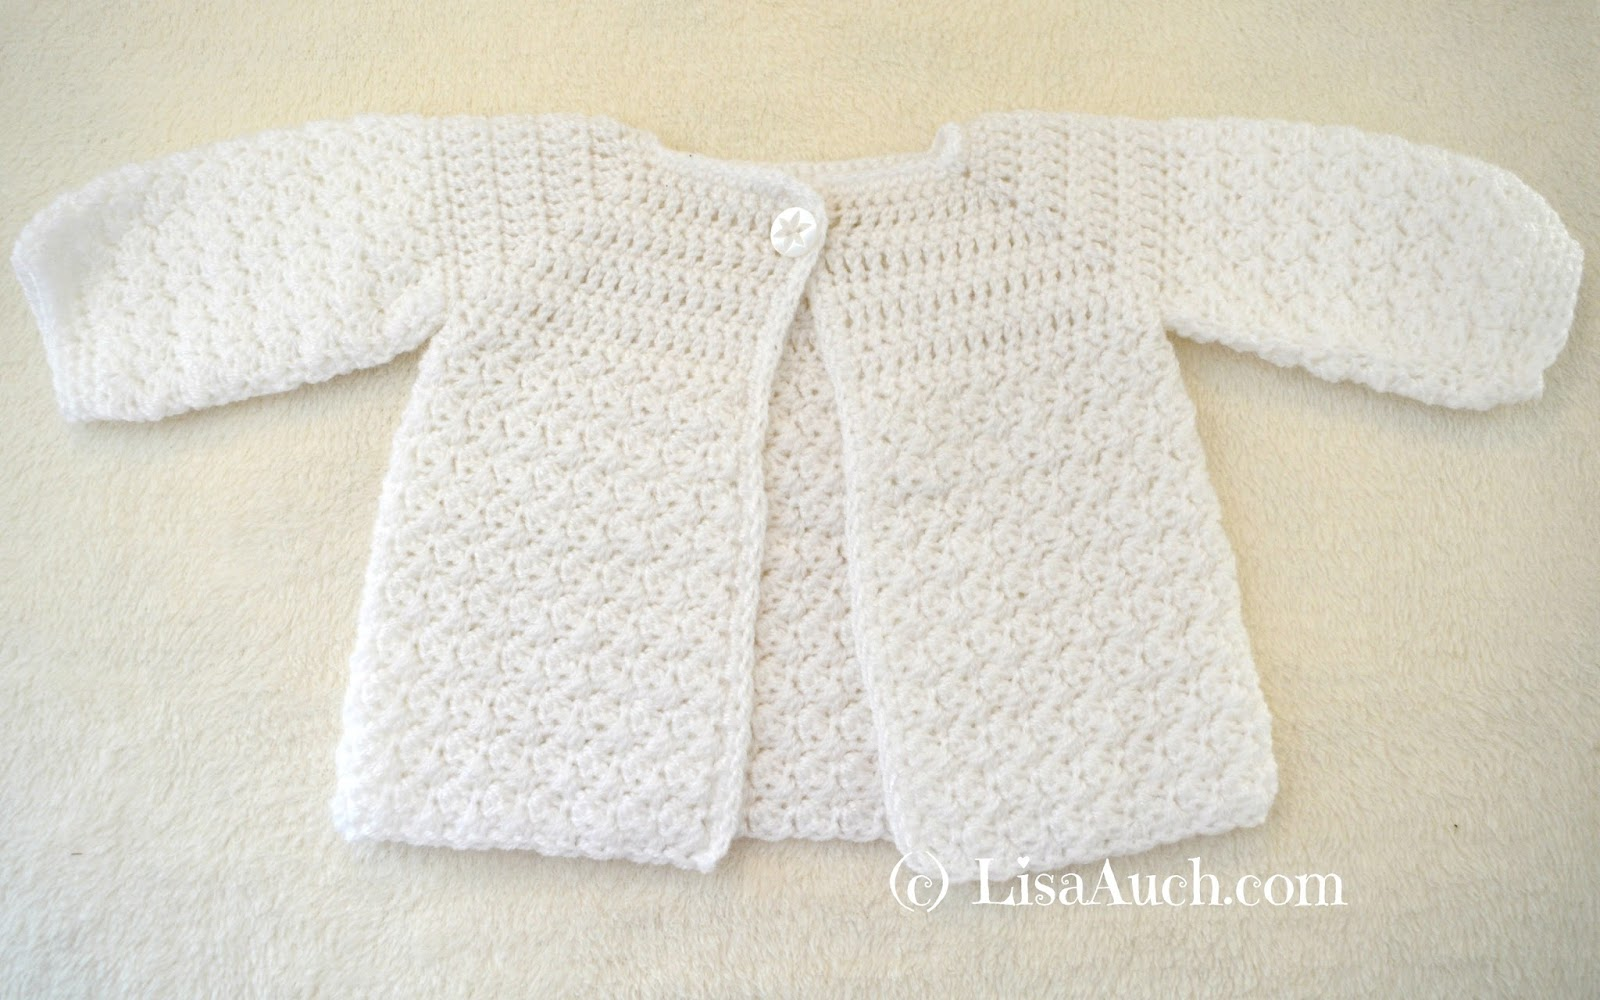 Free Crochet Pattern For A Baby Sweater : Crochet Baby Cardigan Easy Free Pattern FREE Crochet ...